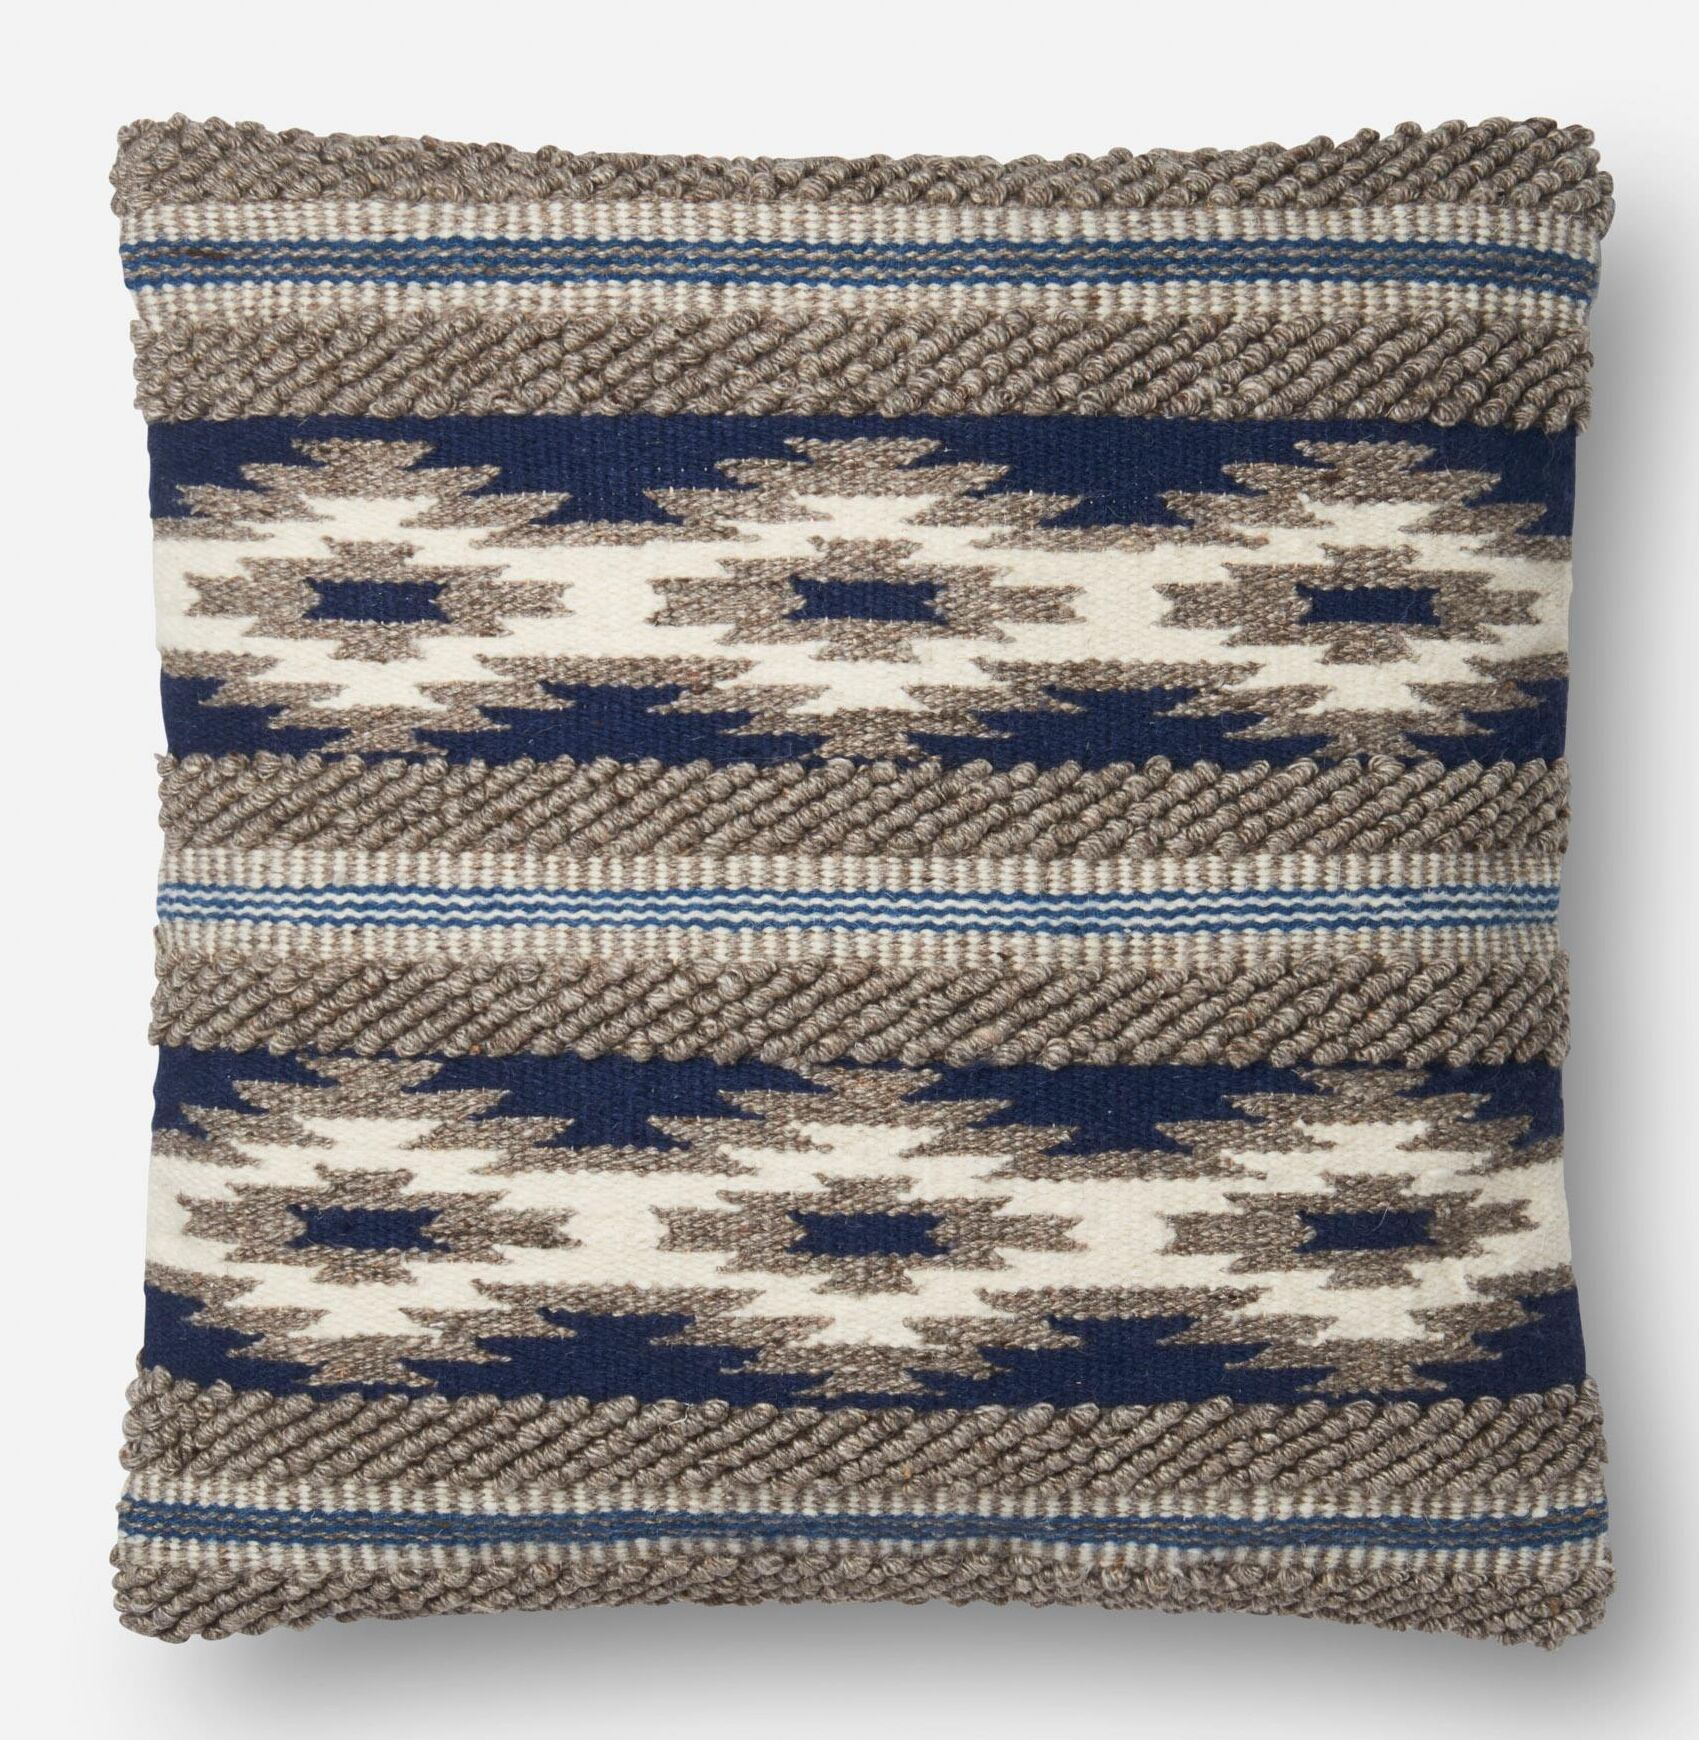 Oak Brook Throw Pillow Fill Material: Down/Feather, Type: Pillow